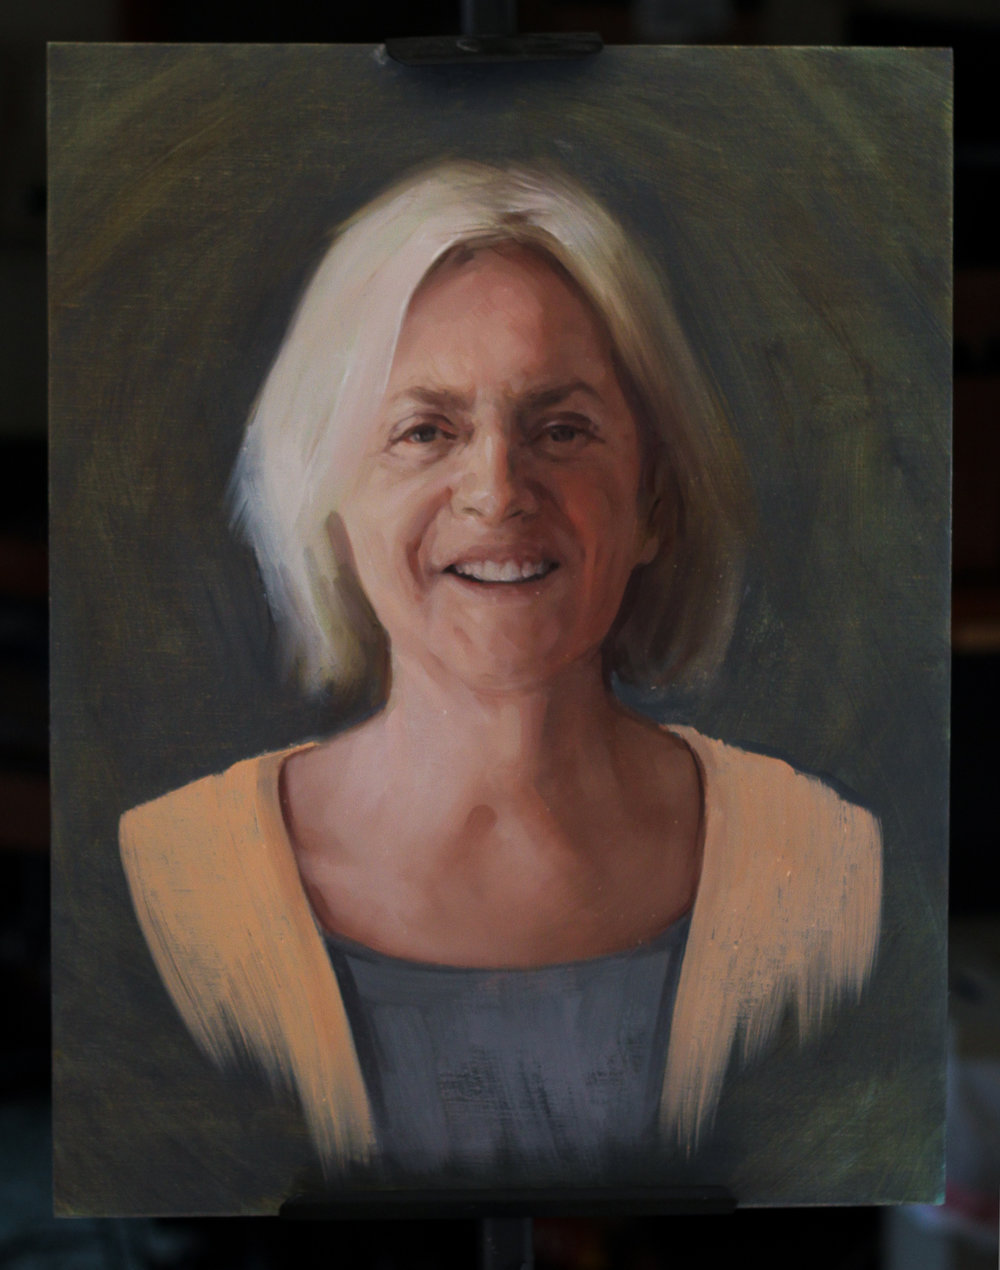 "'Ann Arnold' - 2016 - 18"" x 14"" - oil on linen"